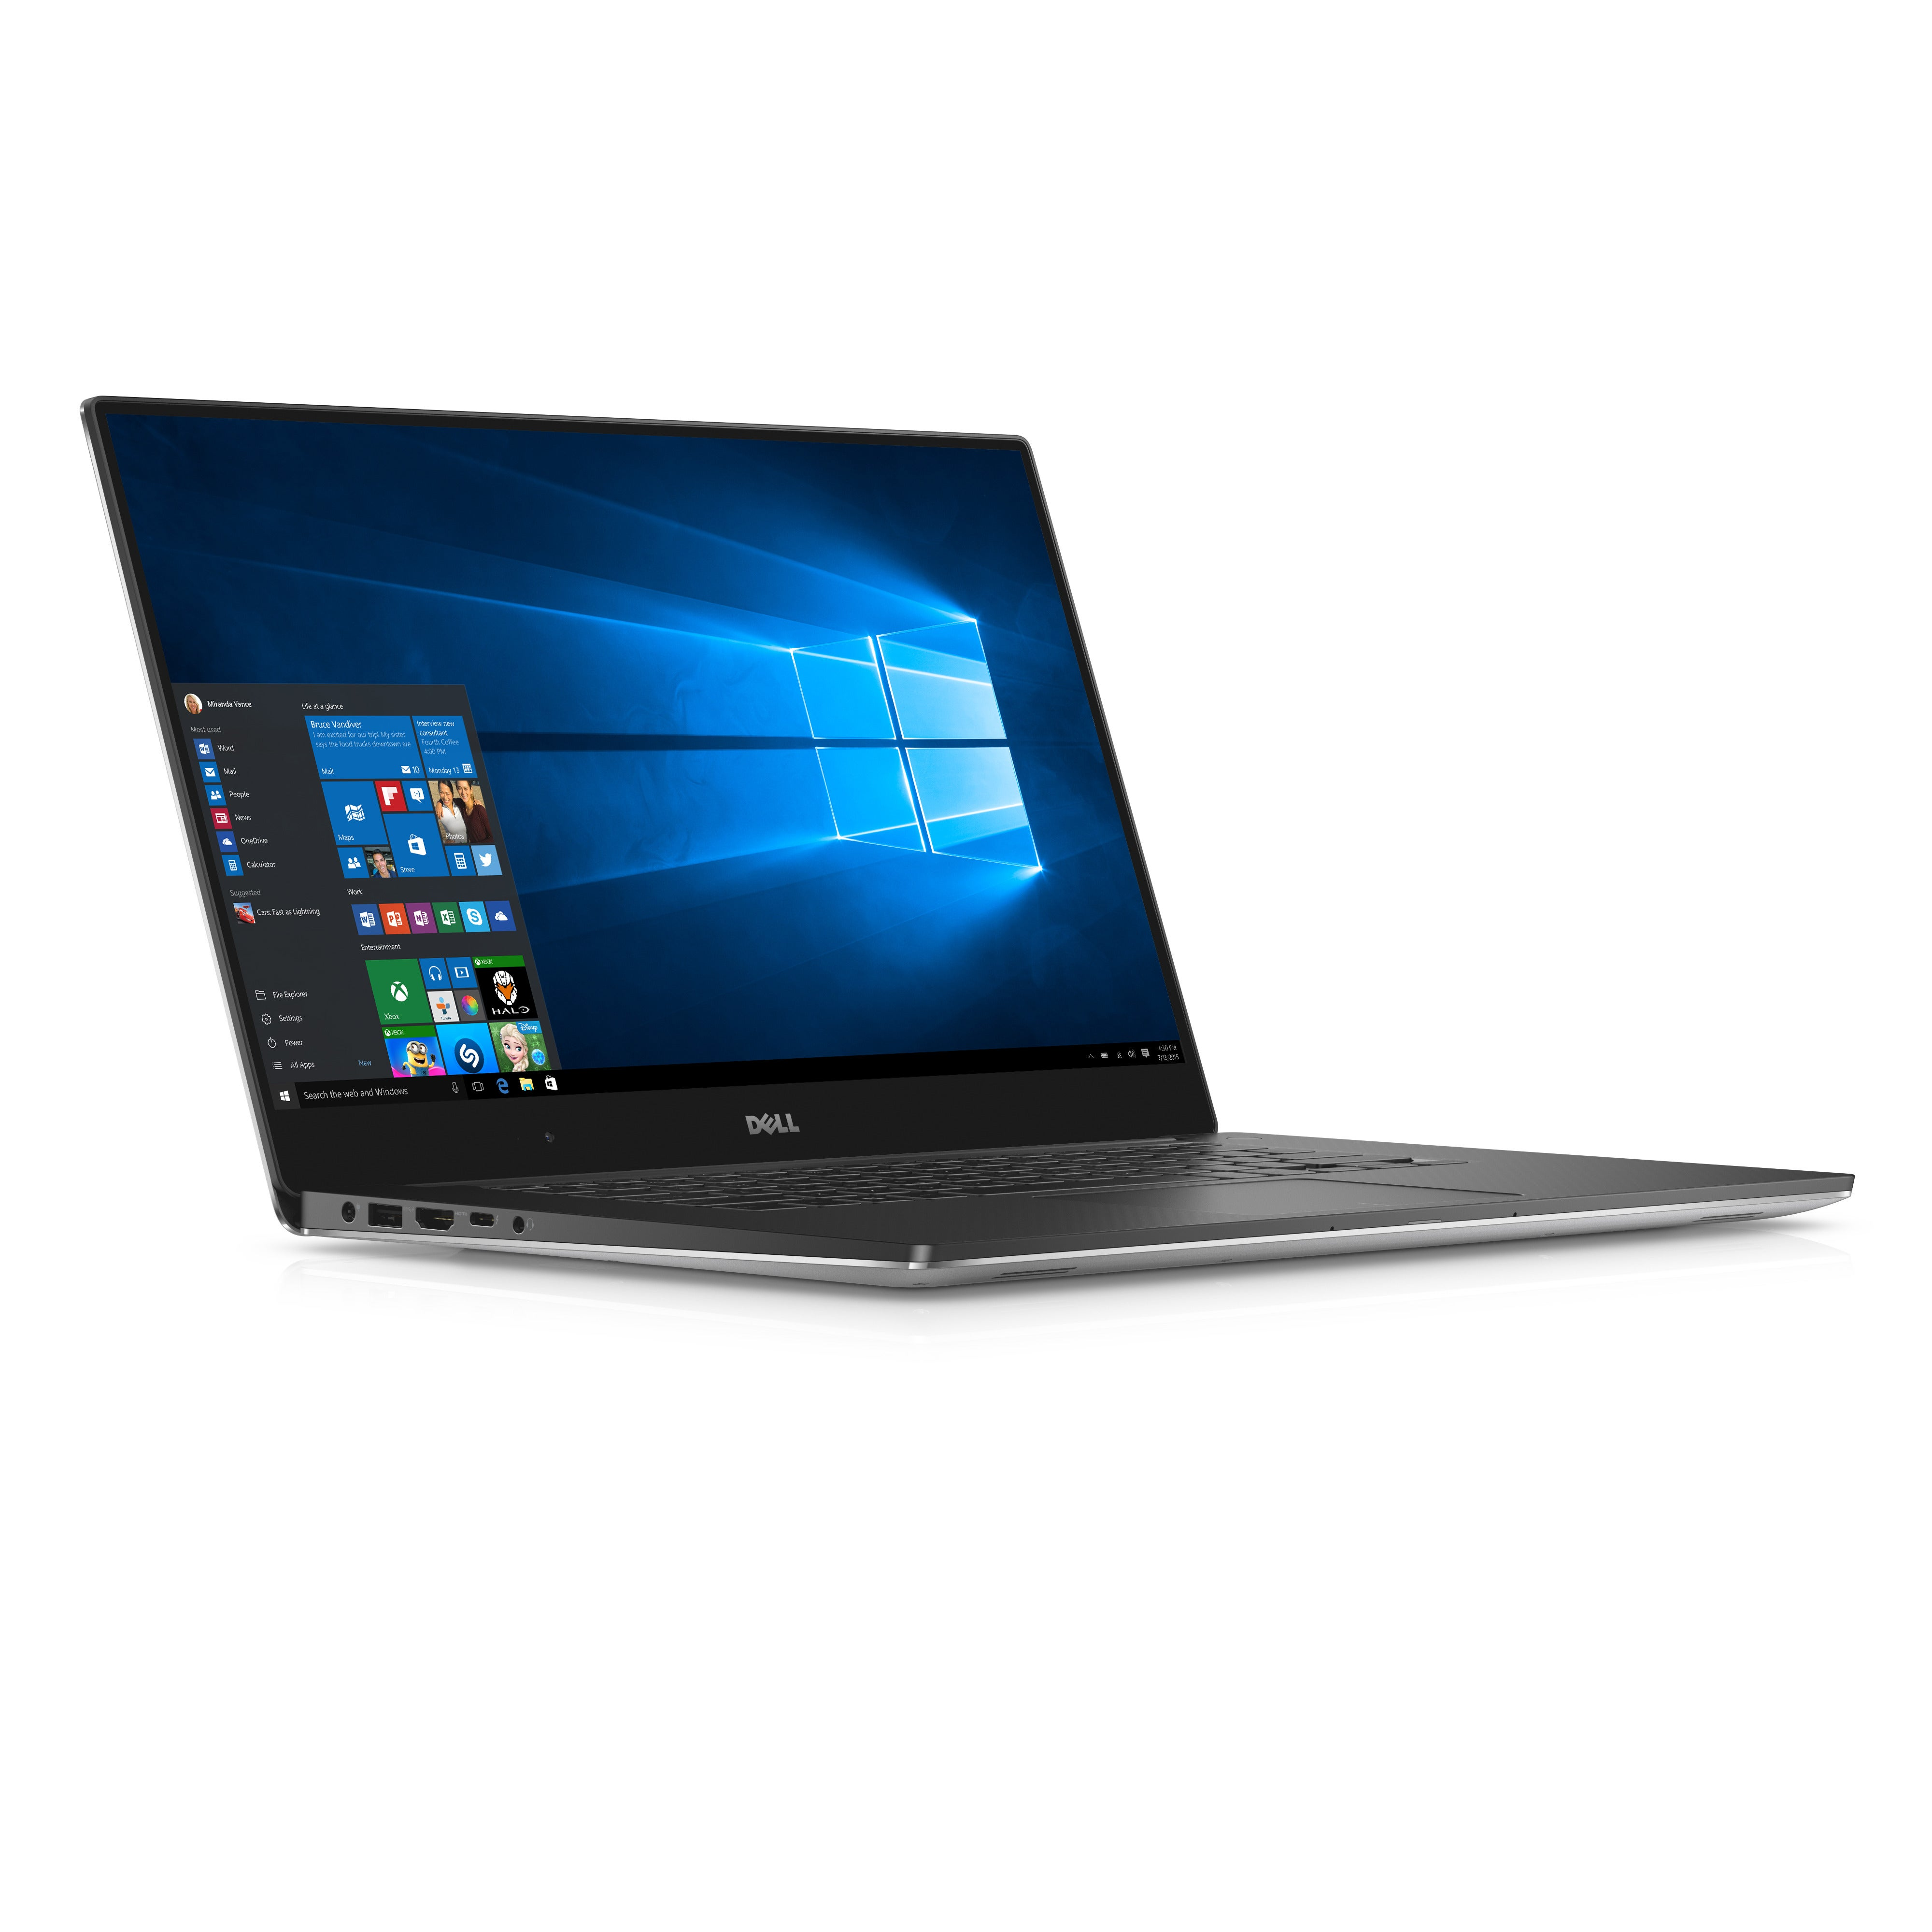 dell 39 s xps laptops get bigger with the 999 xps 15 and better with all skylake cpus pcworld. Black Bedroom Furniture Sets. Home Design Ideas